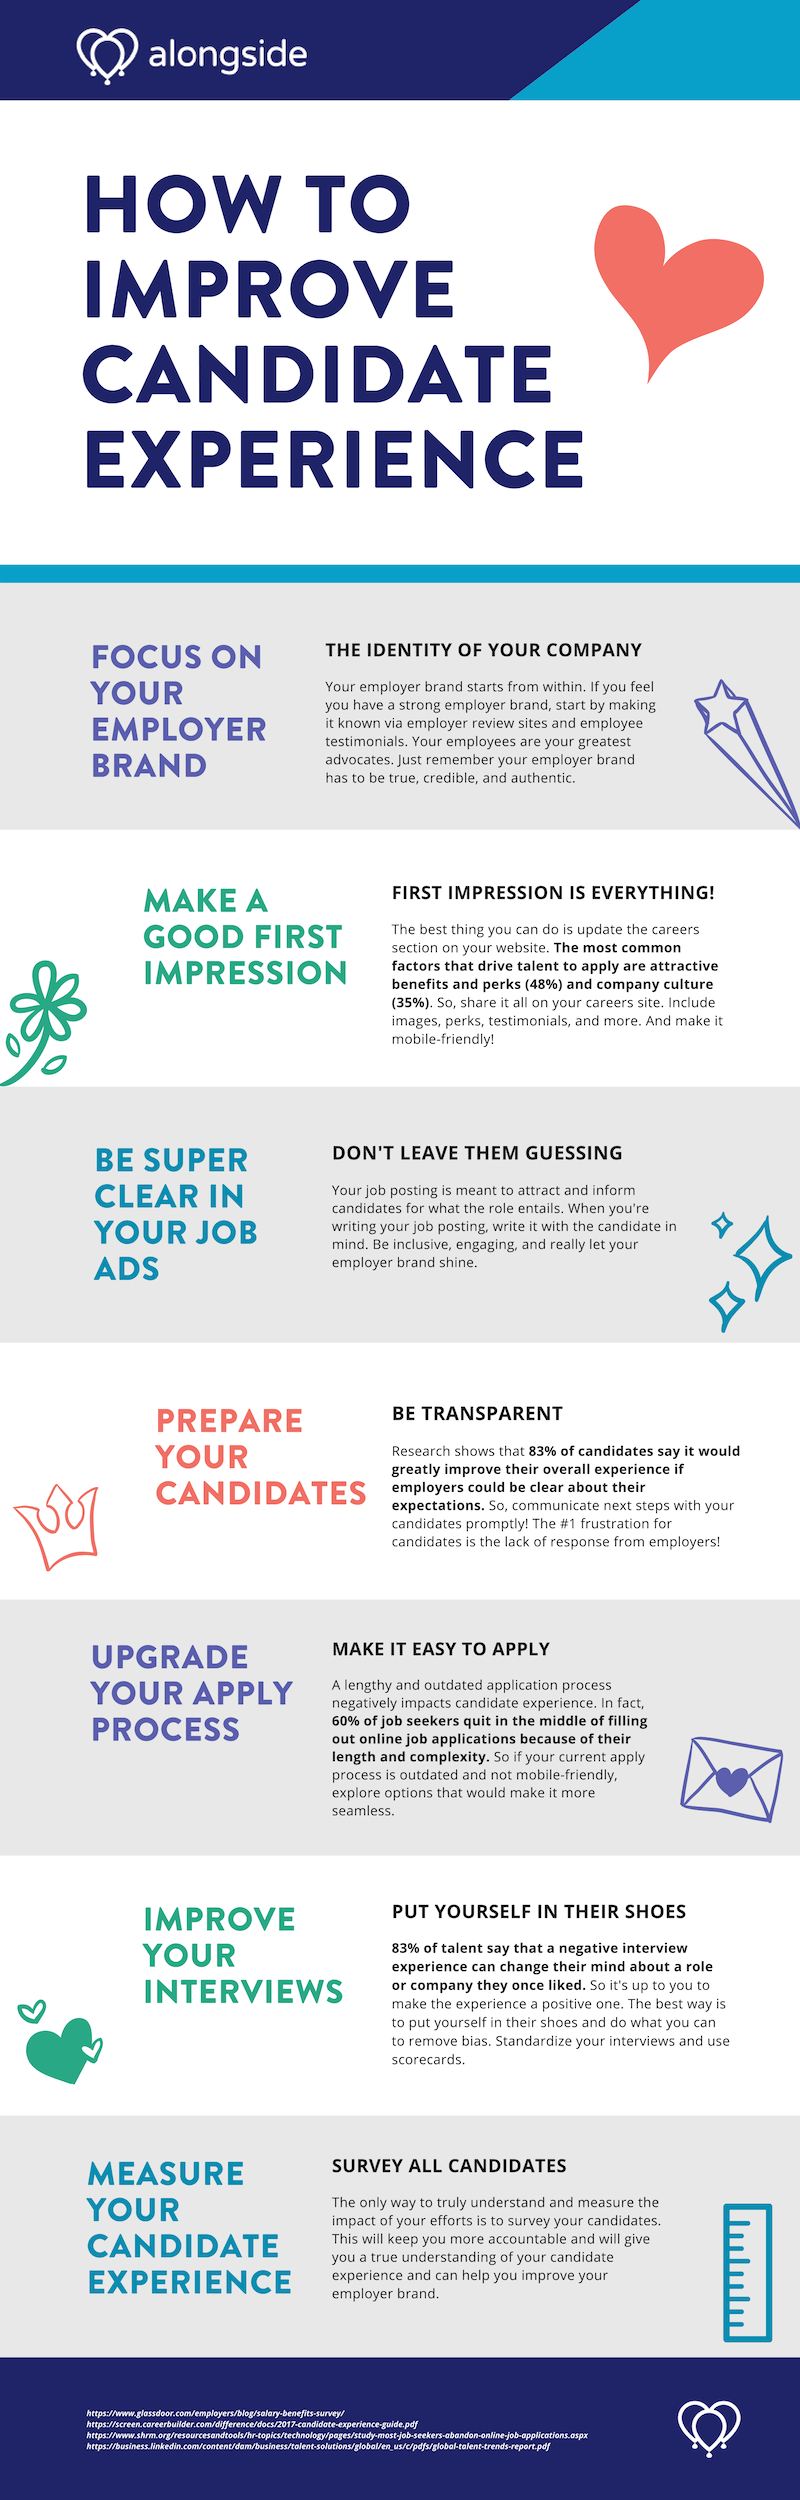 HOW TO IMPROVE CANDIDATE EXPERIENCE INFOGRAPHIC